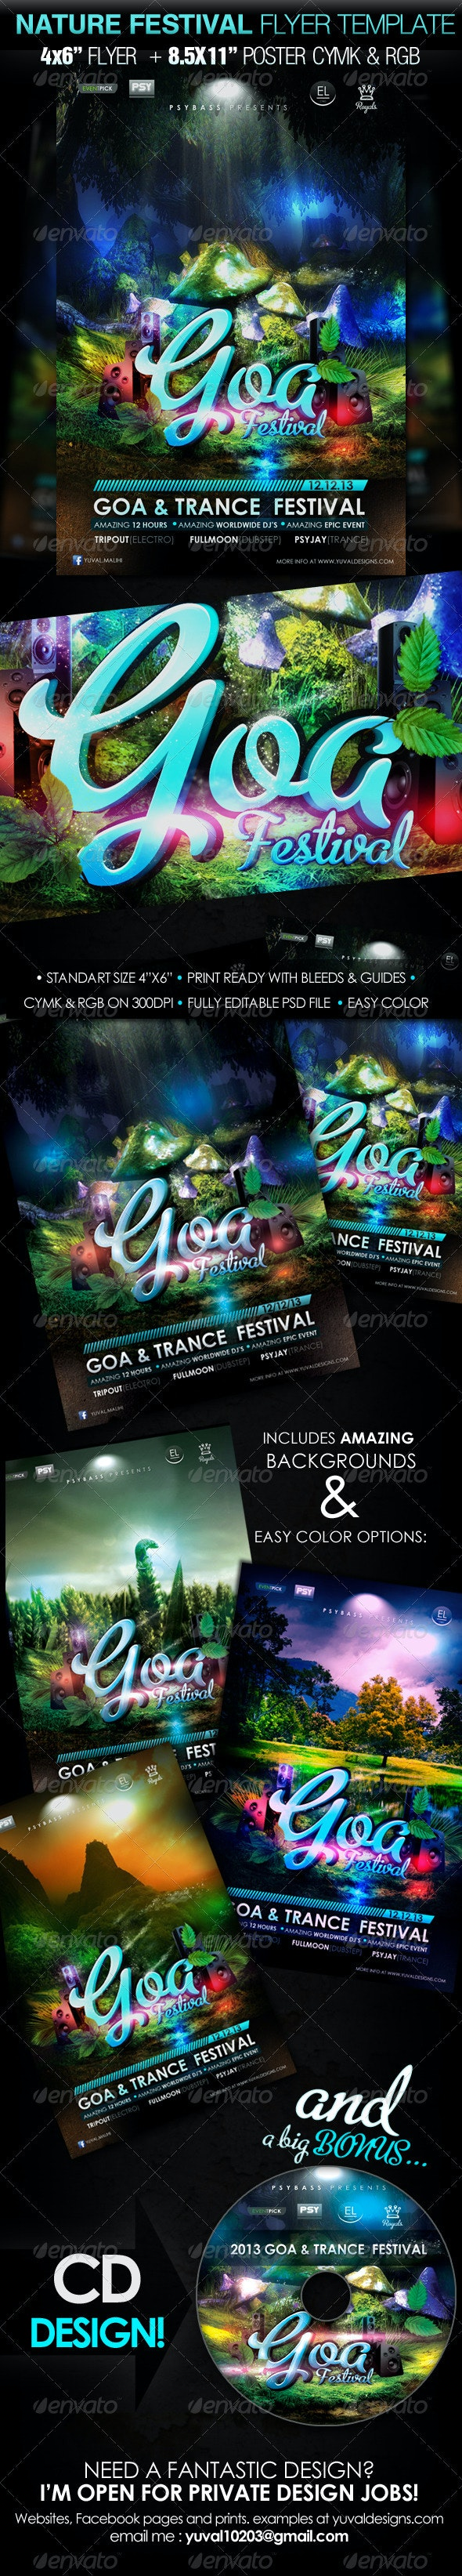 "Nature Festival Flyer Template ""Goa trance"" - Clubs & Parties Events"